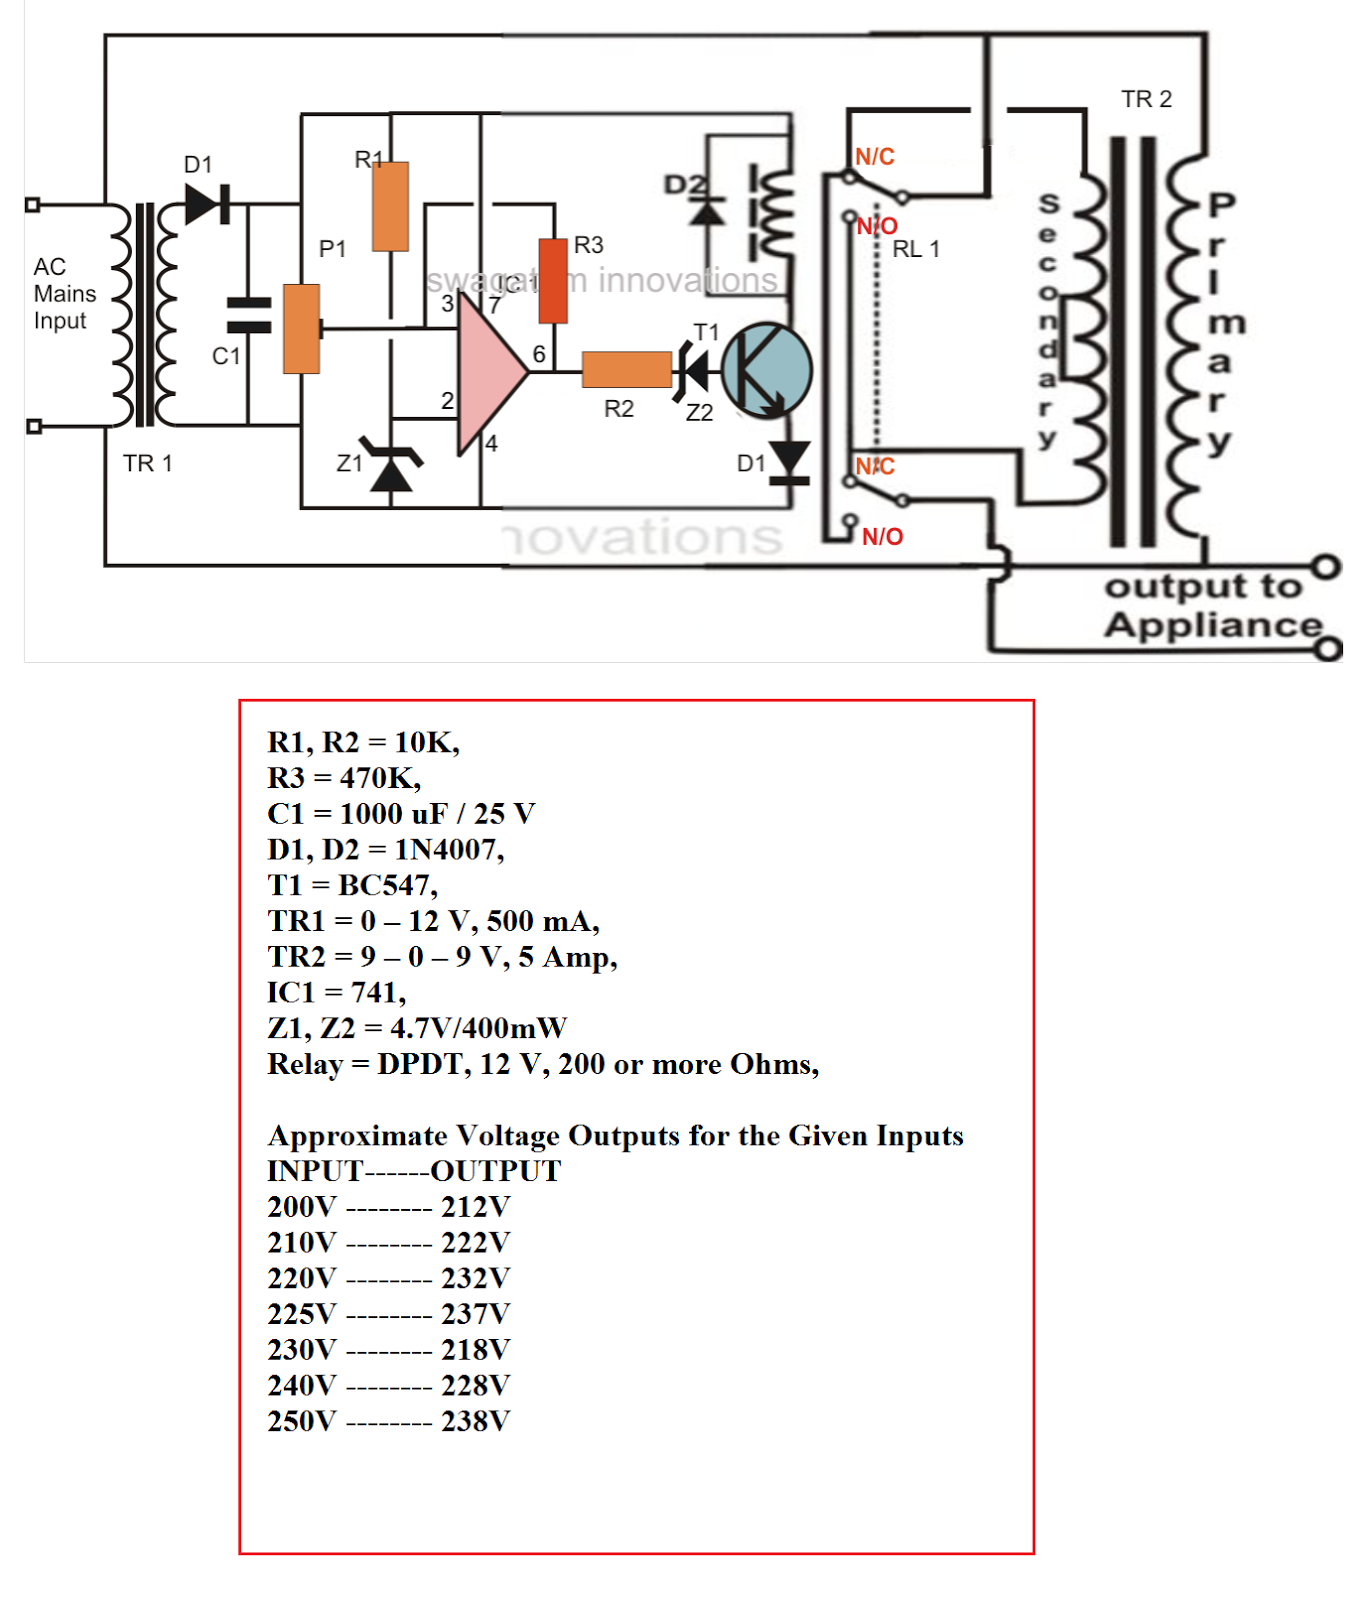 Electrical Engineering World How To Make A Small Homemade Automatic Circuit Diagram Voltage Stabilizer Click Here